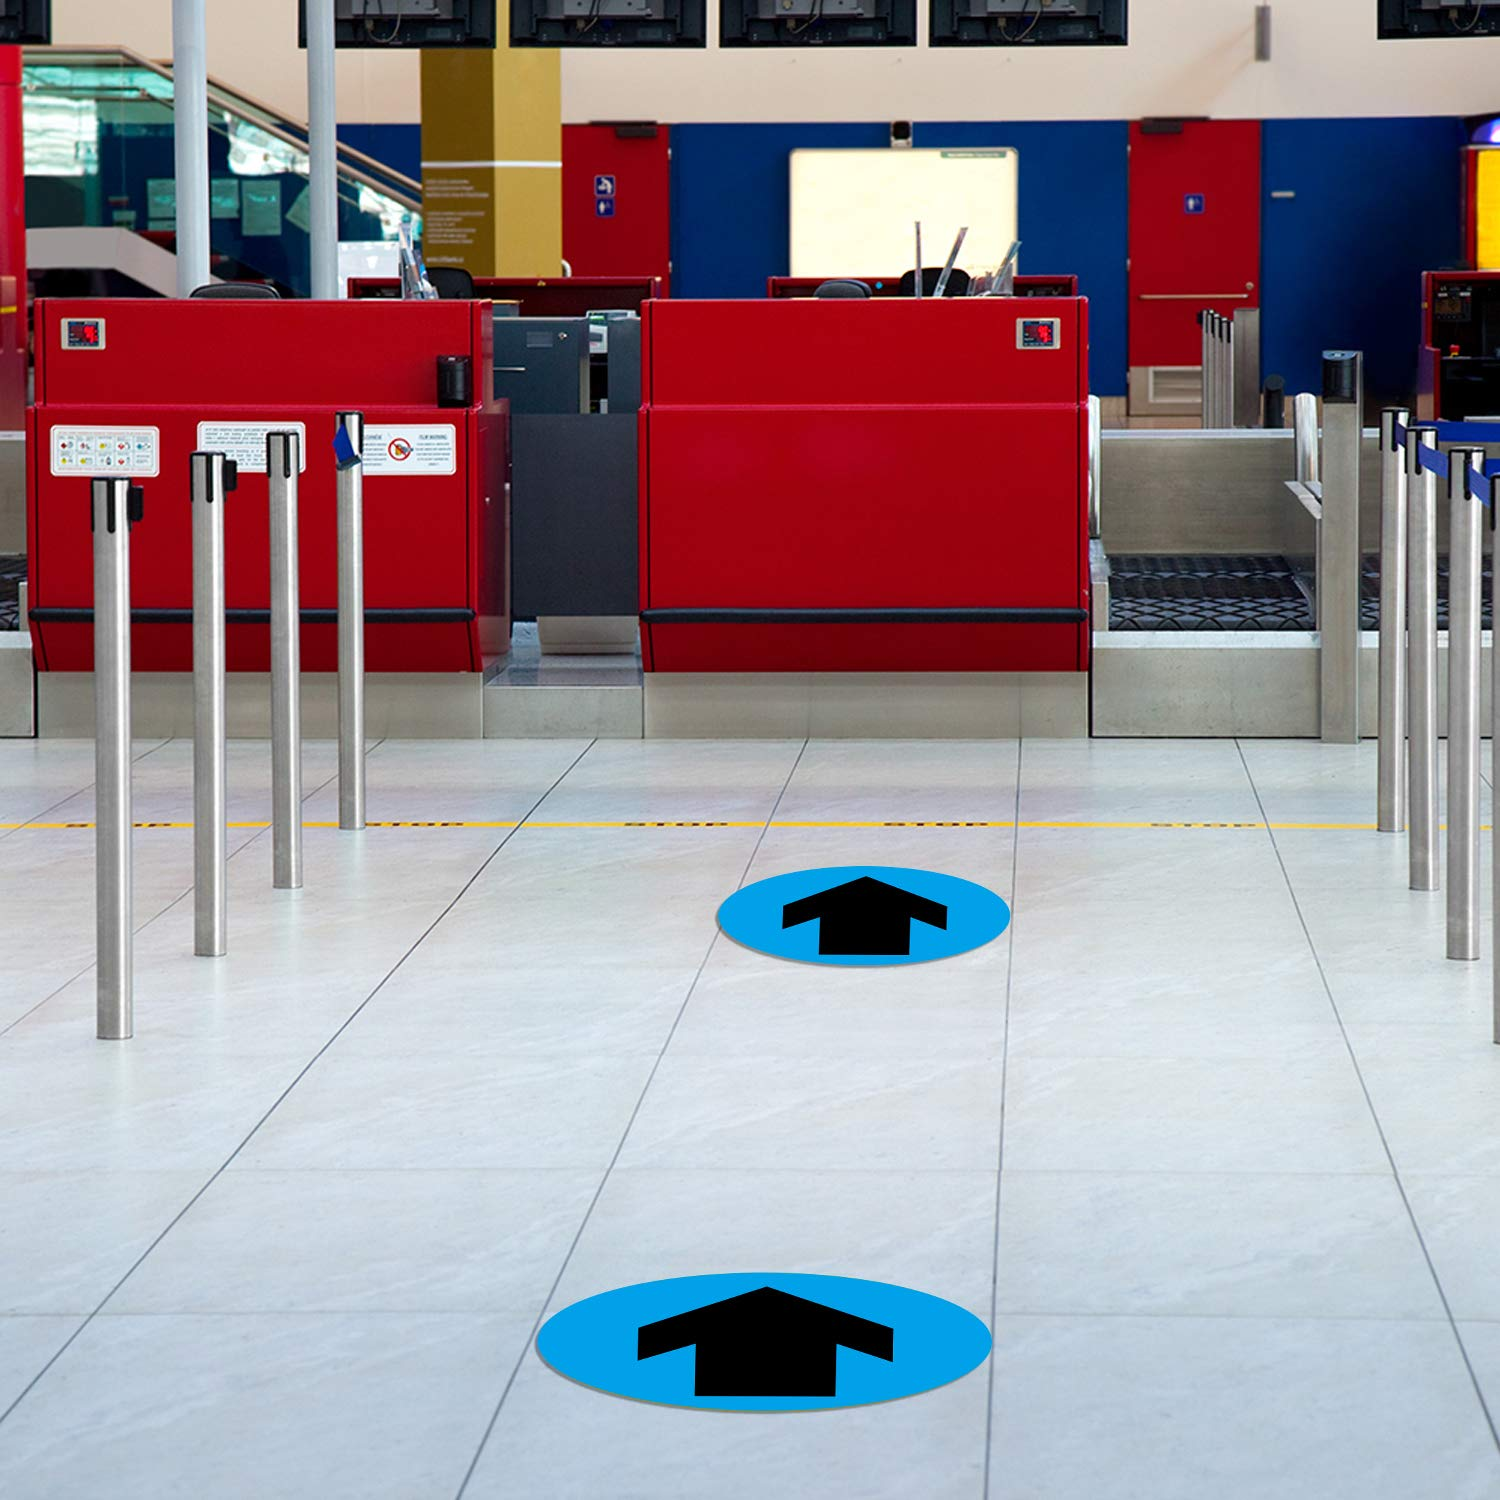 Directional Floor Stickers Floor Arrows Decals Social Distance Floor Sign Markers for Crowd Guidance Control 15 Bank Station Directional Arrows Signs 9.5 Inch